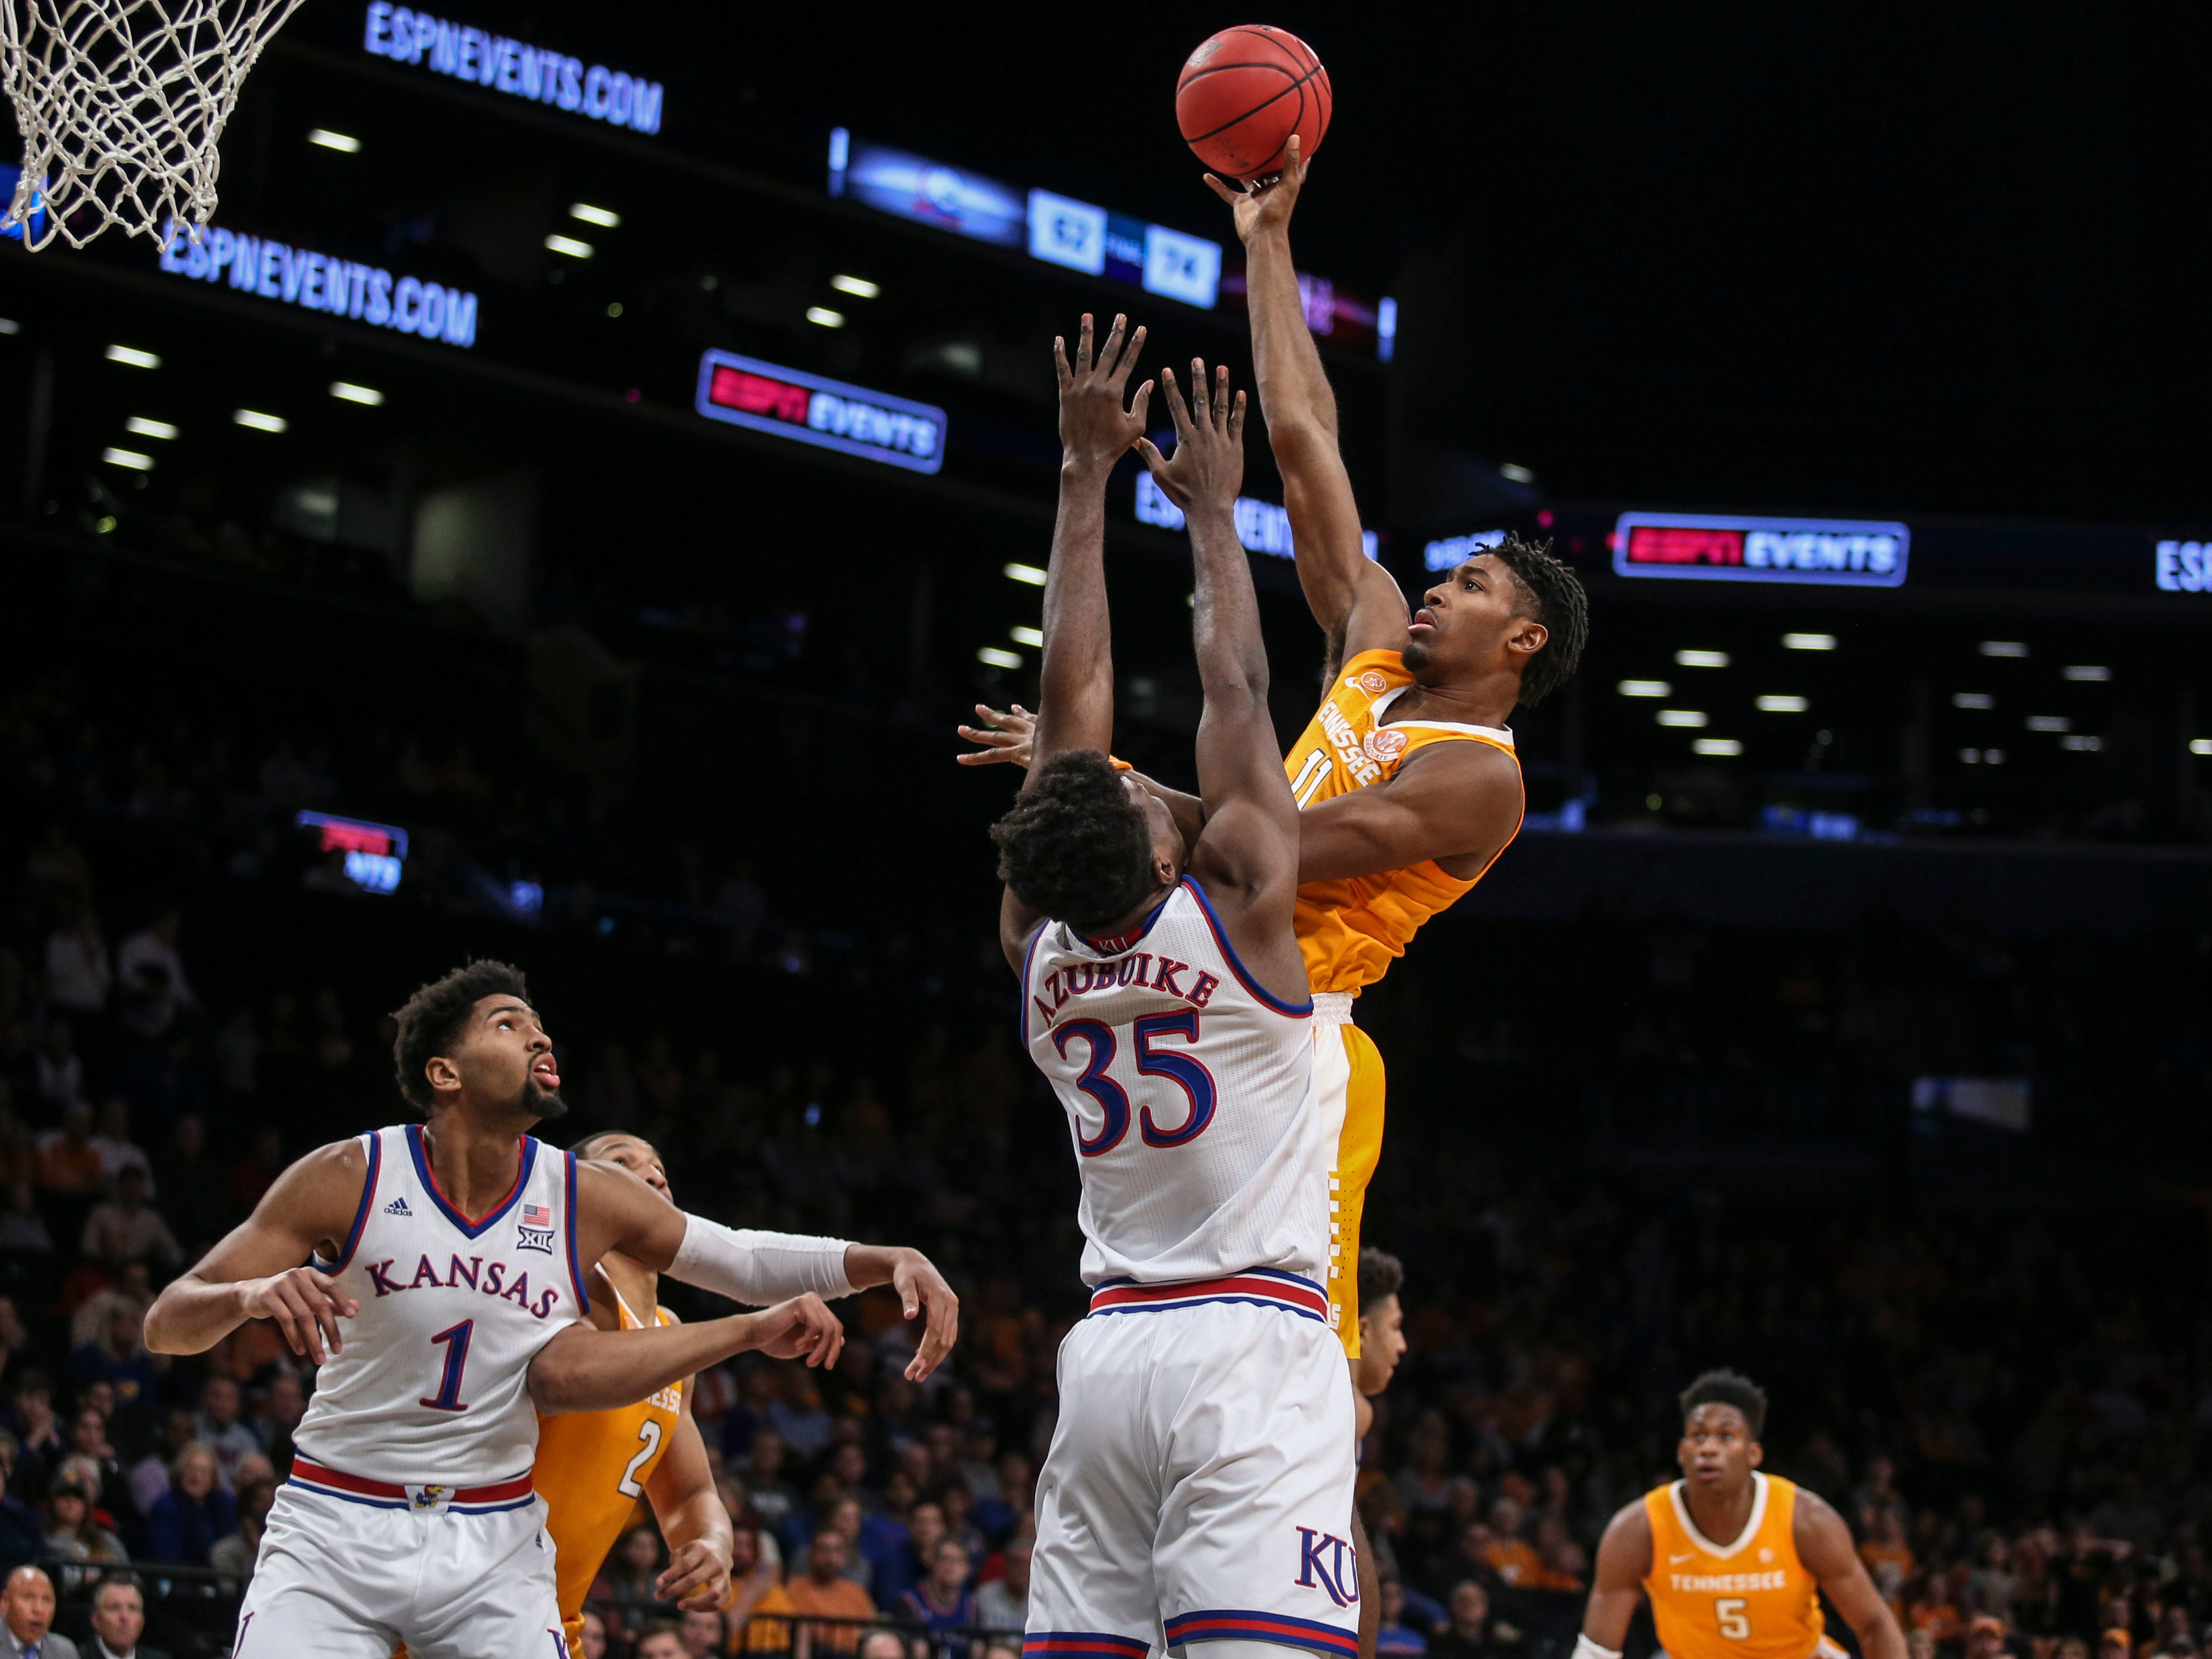 Nov 23, 2018; Brooklyn, NY, USA; Tennessee Volunteers forward Kyle Alexander (11) puts up a shot in the first half against the Kansas Jayhawks in the championship game of the NIT Season Tipoff at Barclays Center. Mandatory Credit: Wendell Cruz-USA TODAY Sports